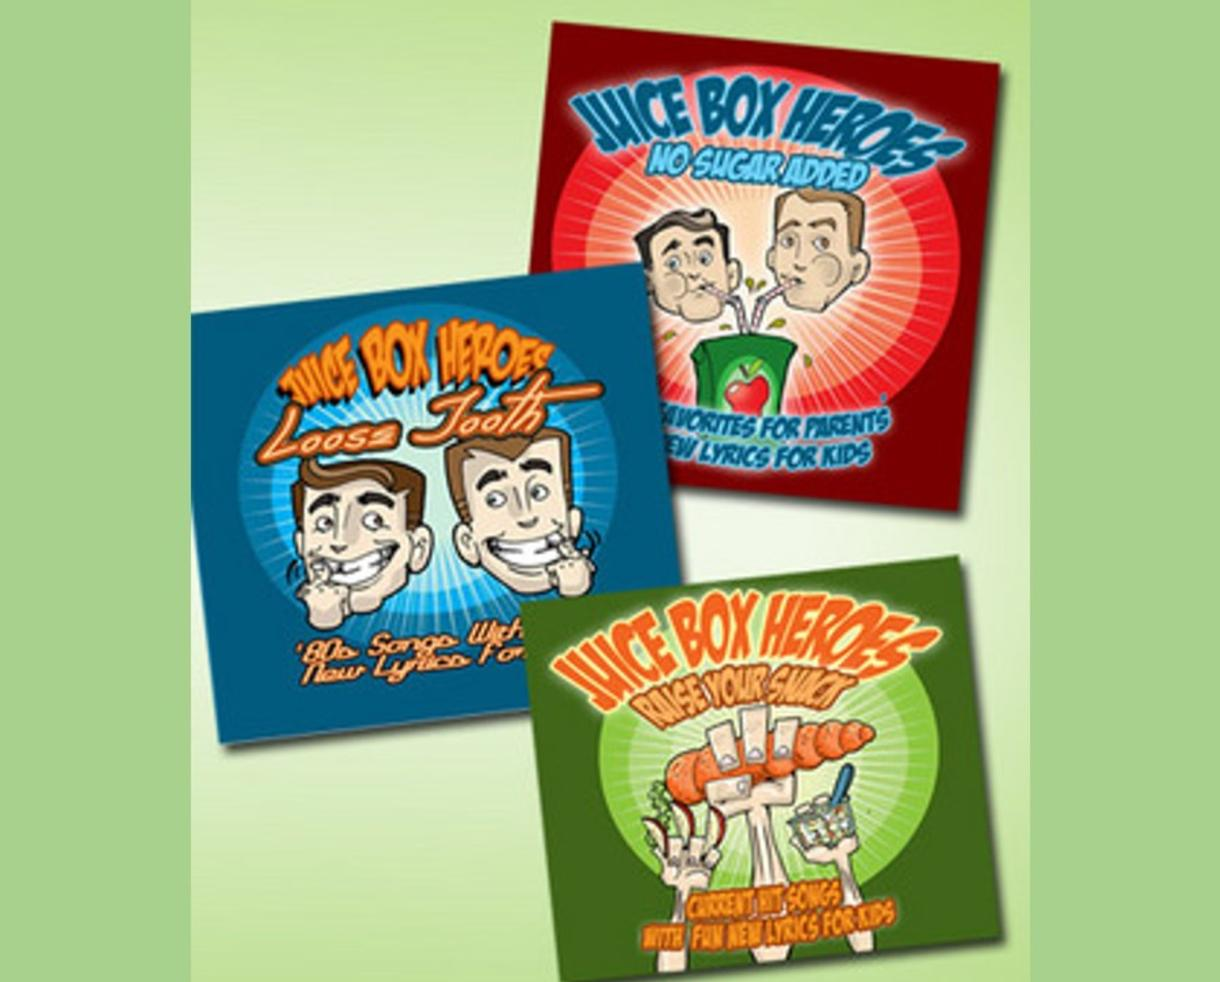 Children's Music 3 CD Box Set by Juice Box Heroes | CertifiKID